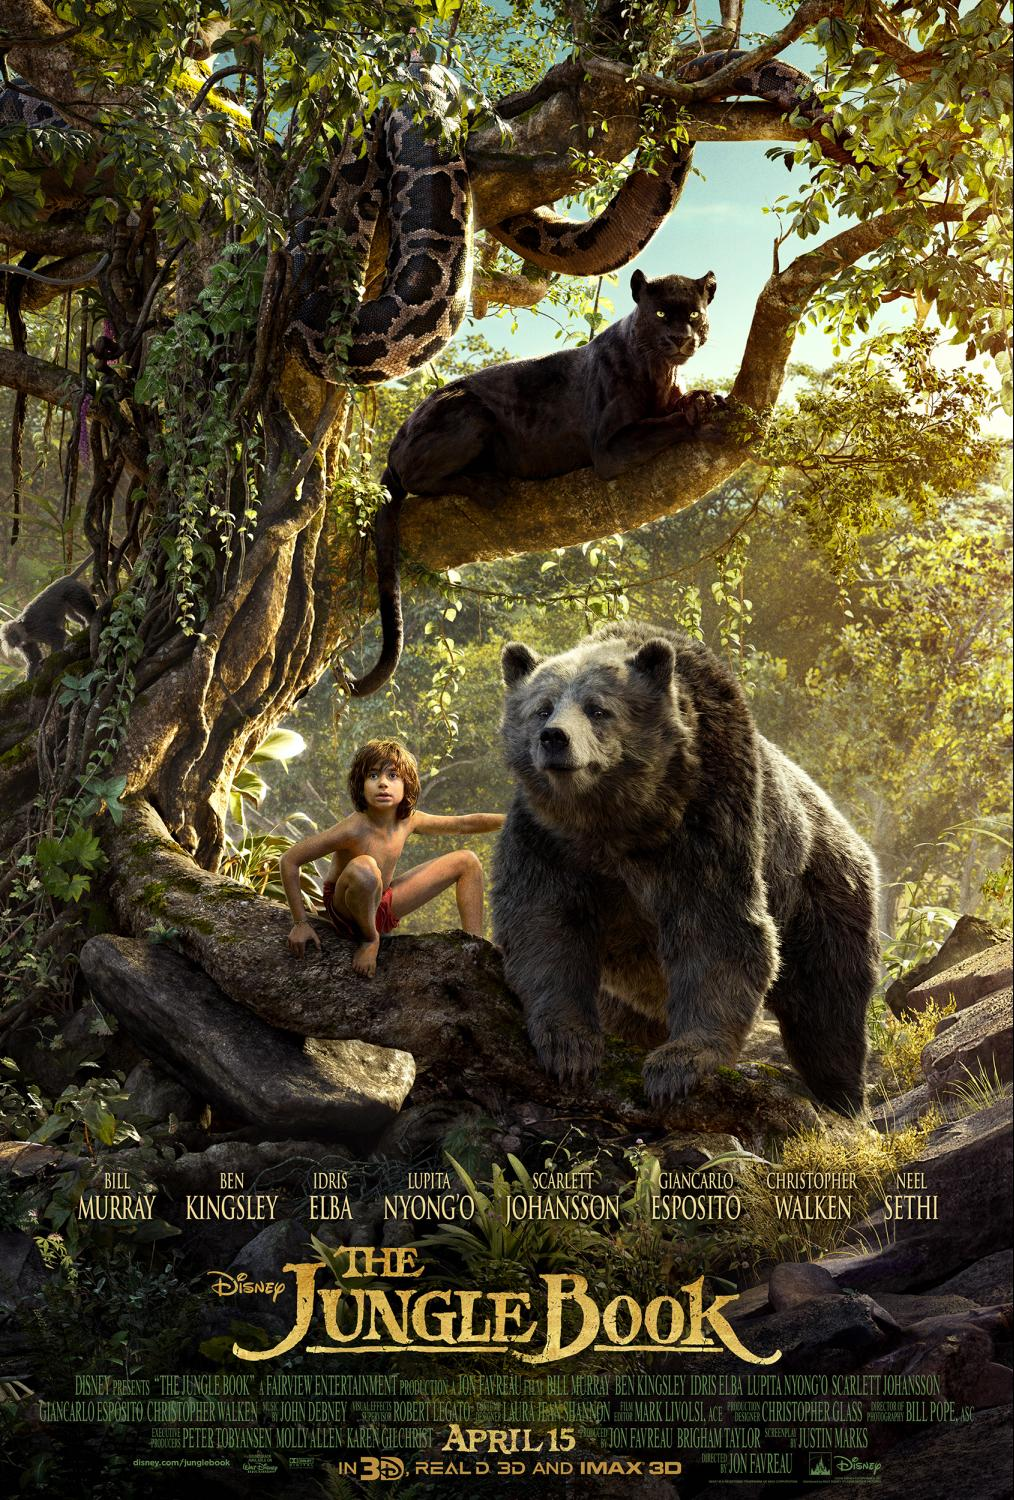 With Disney's THE JUNGLE BOOK